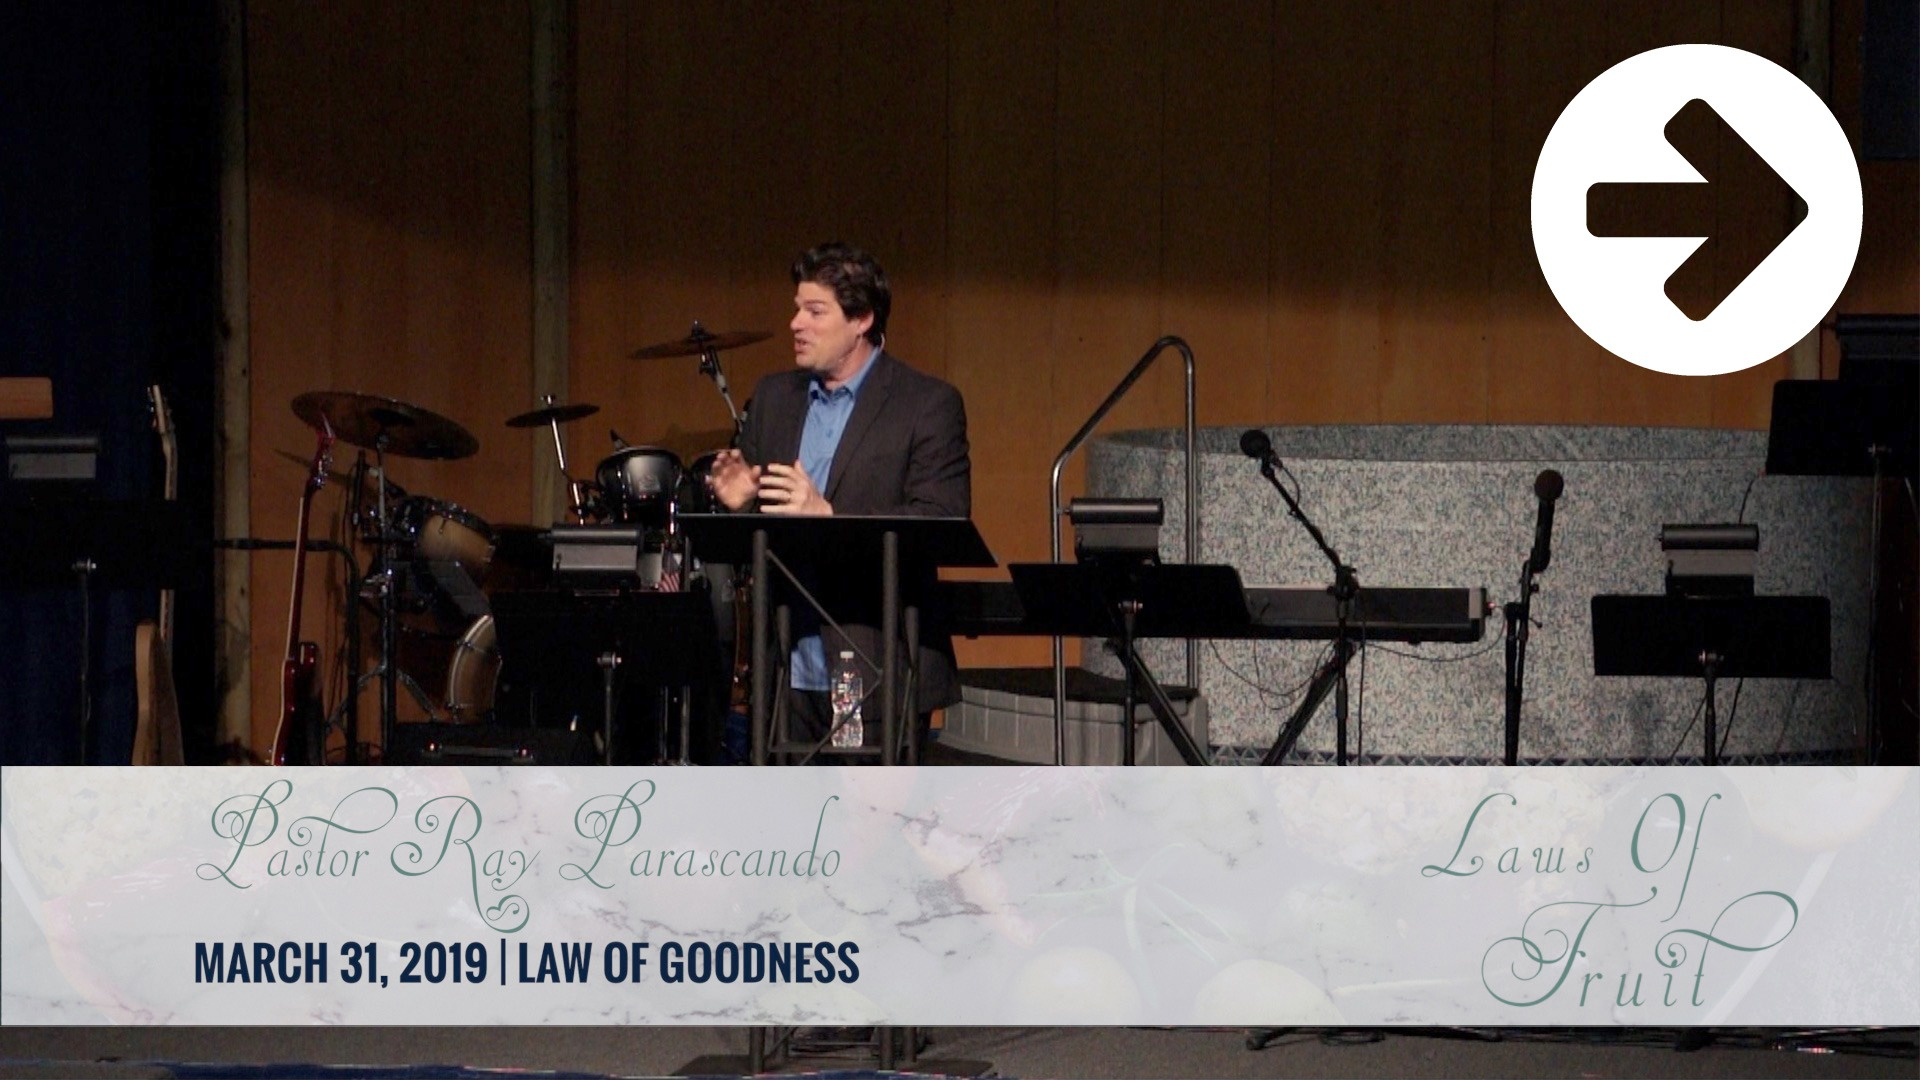 Law Of Goodness Image